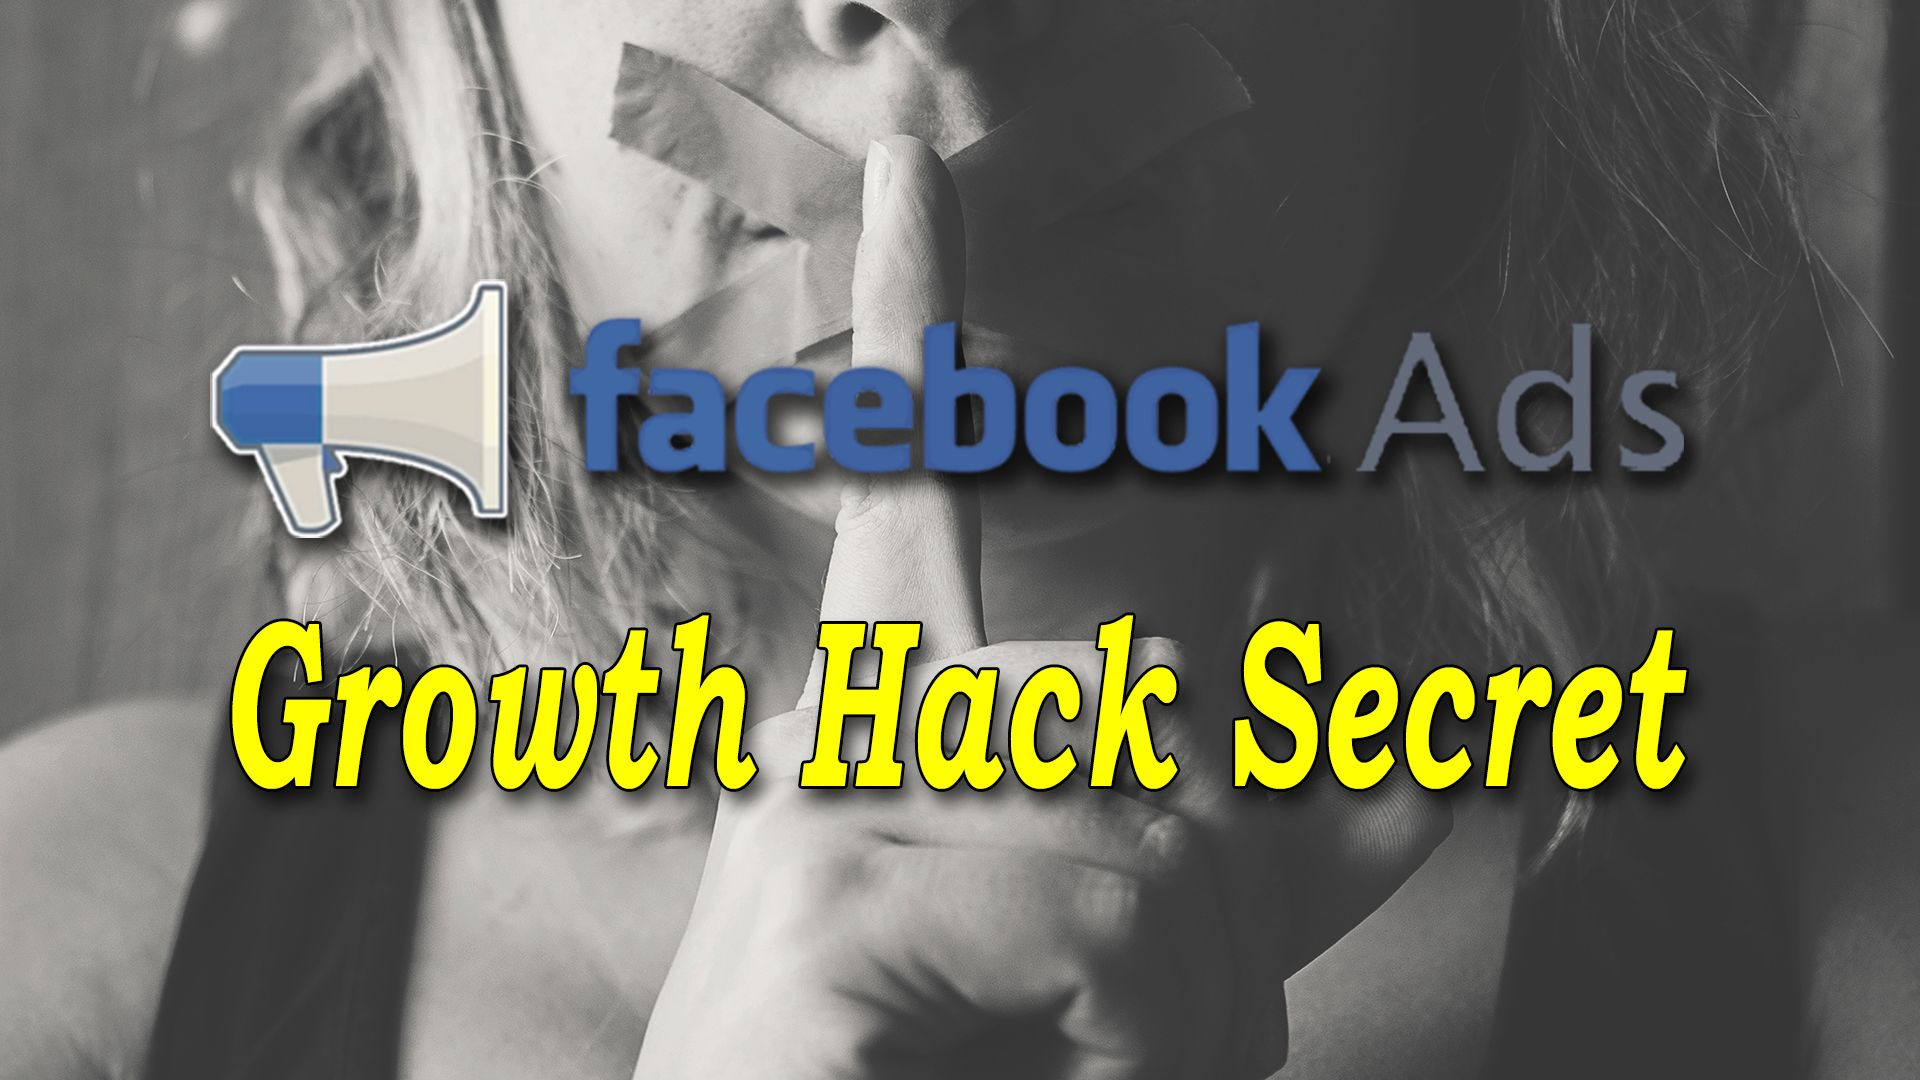 Facebook Ads : Growth Hack secret #GrowthHacking #WebMarketing #FormationGrowthHacking #CentreDeFormationFrance #TunnelAARRR #AARRR #SocialMedia #CommunityManagement #SEO #FacebookAds #Facebook #PubliciteFacebook